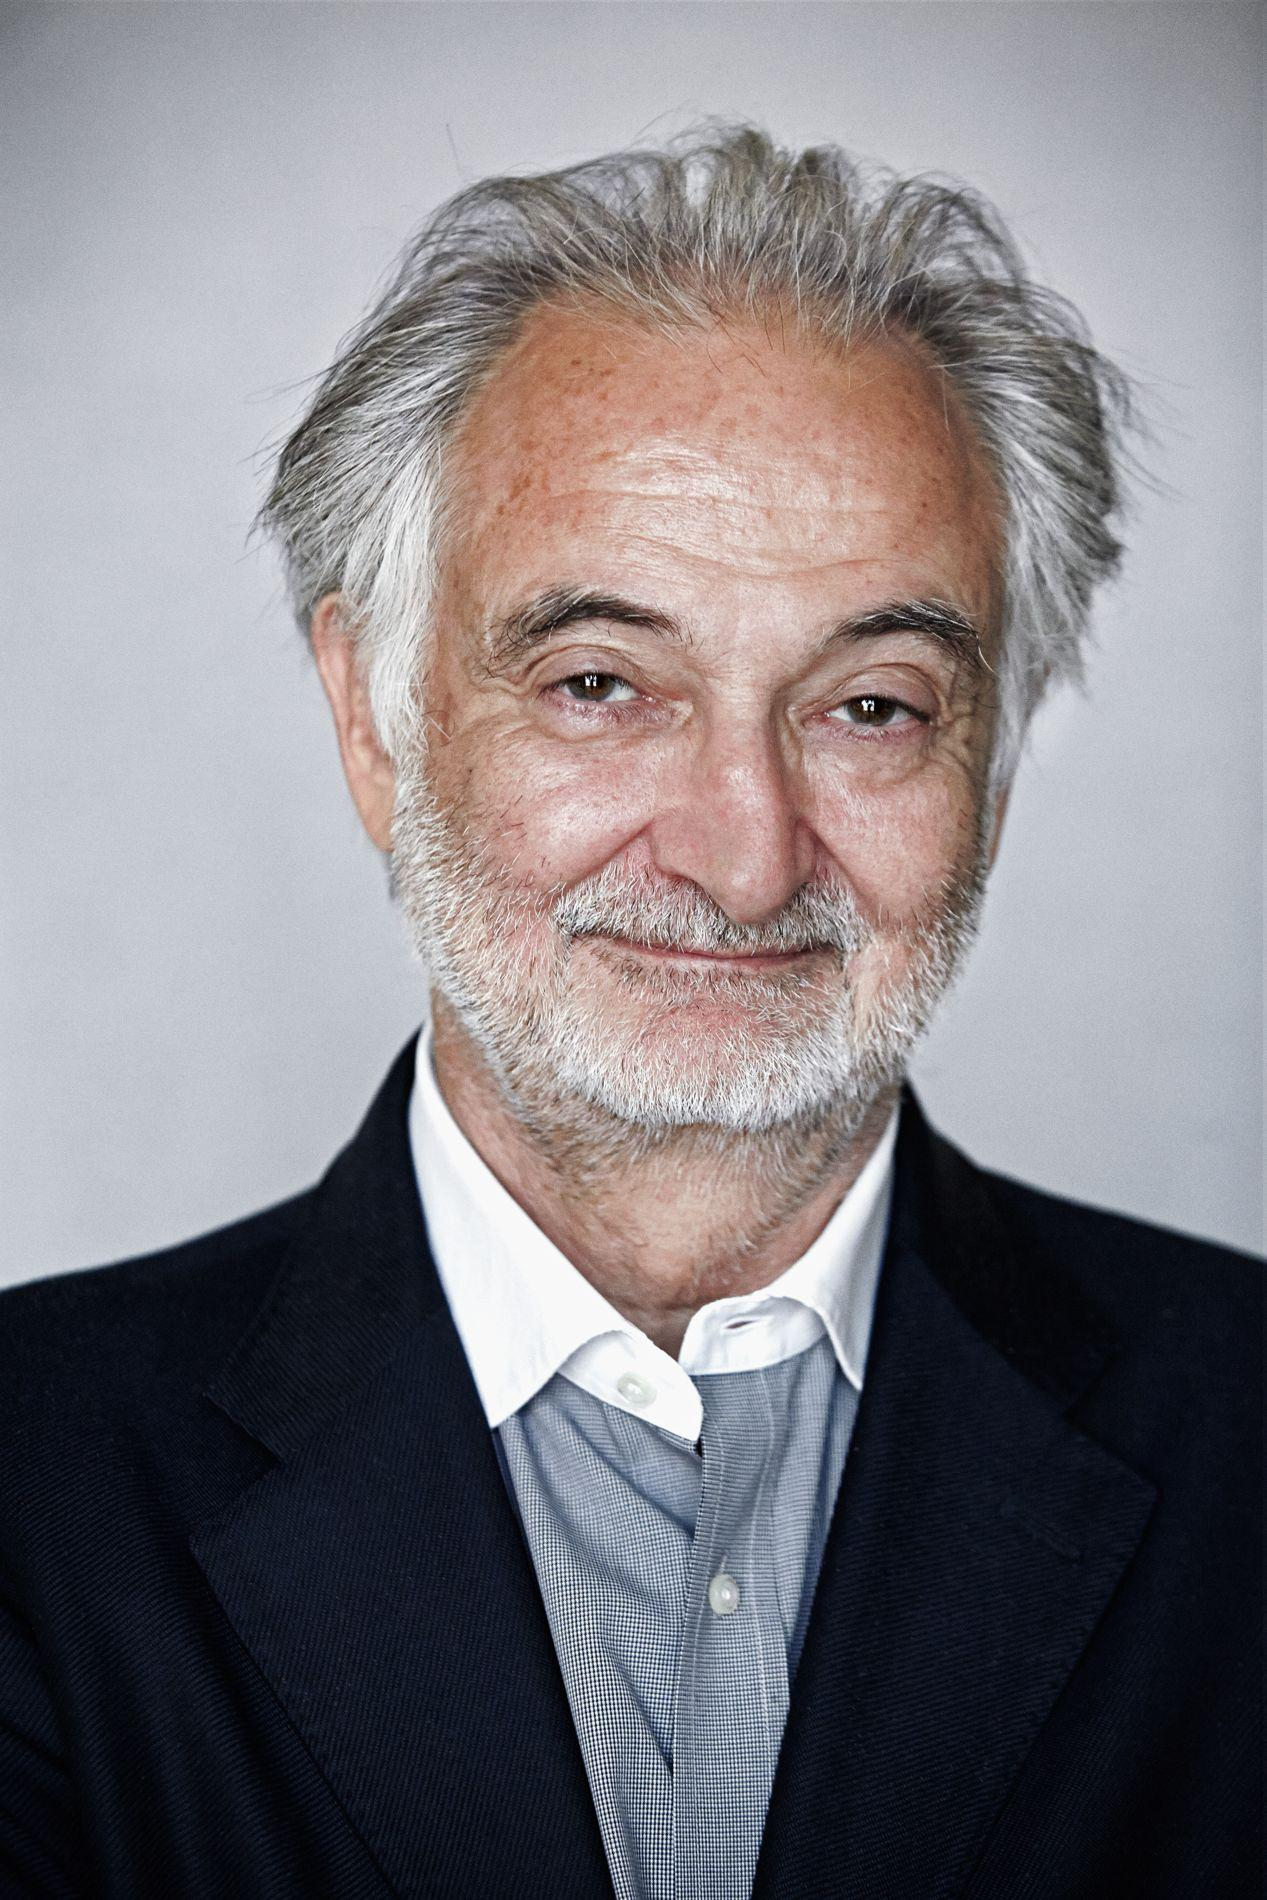 Jacques Attali, invité d'honneur du Forum International sur l'Avenir de l'Éducation